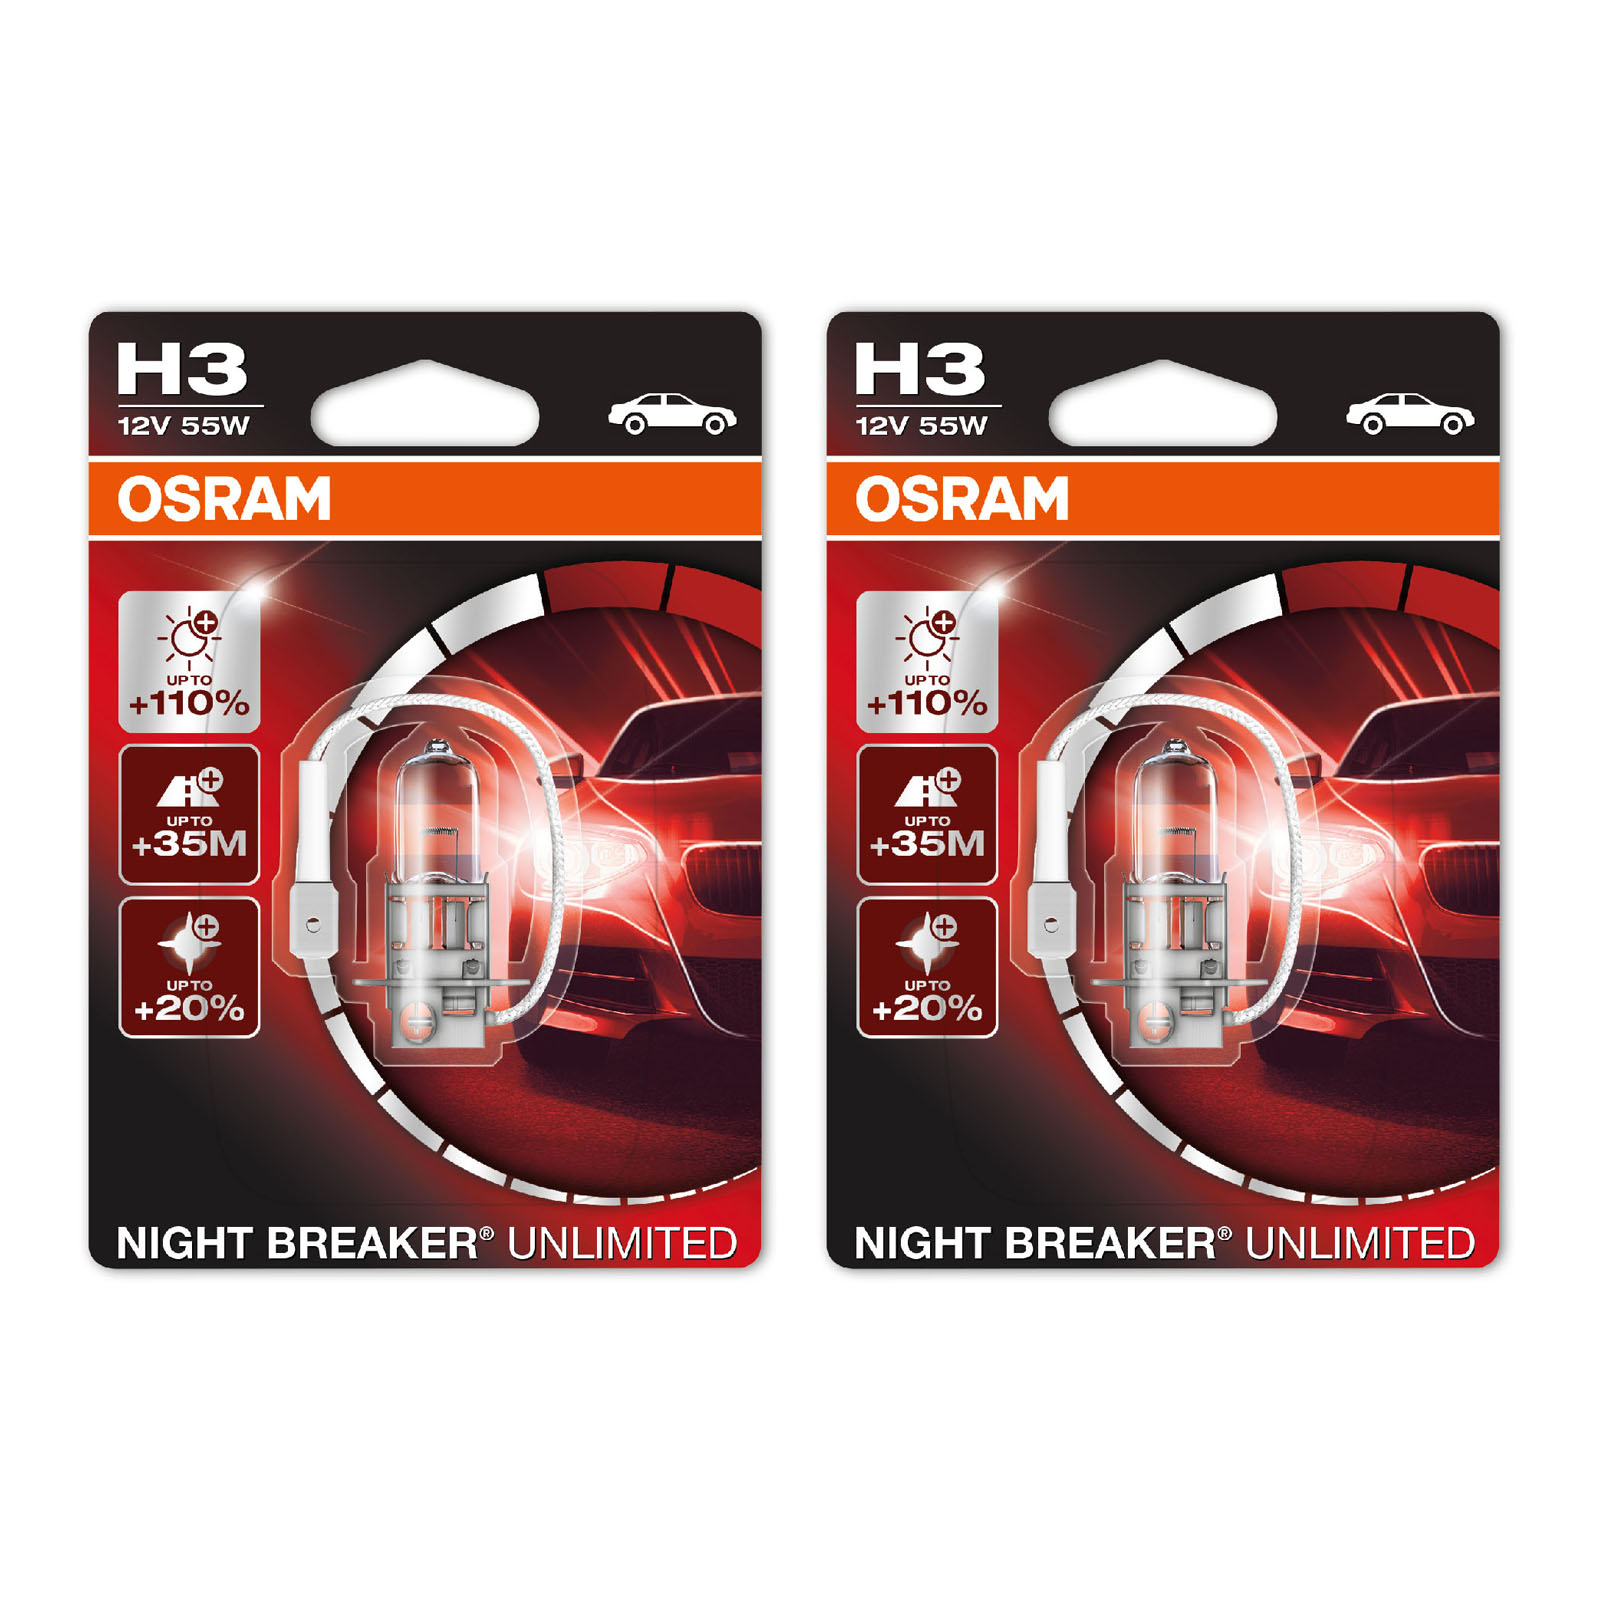 2x proton satria genuine osram night breaker unlimited low. Black Bedroom Furniture Sets. Home Design Ideas